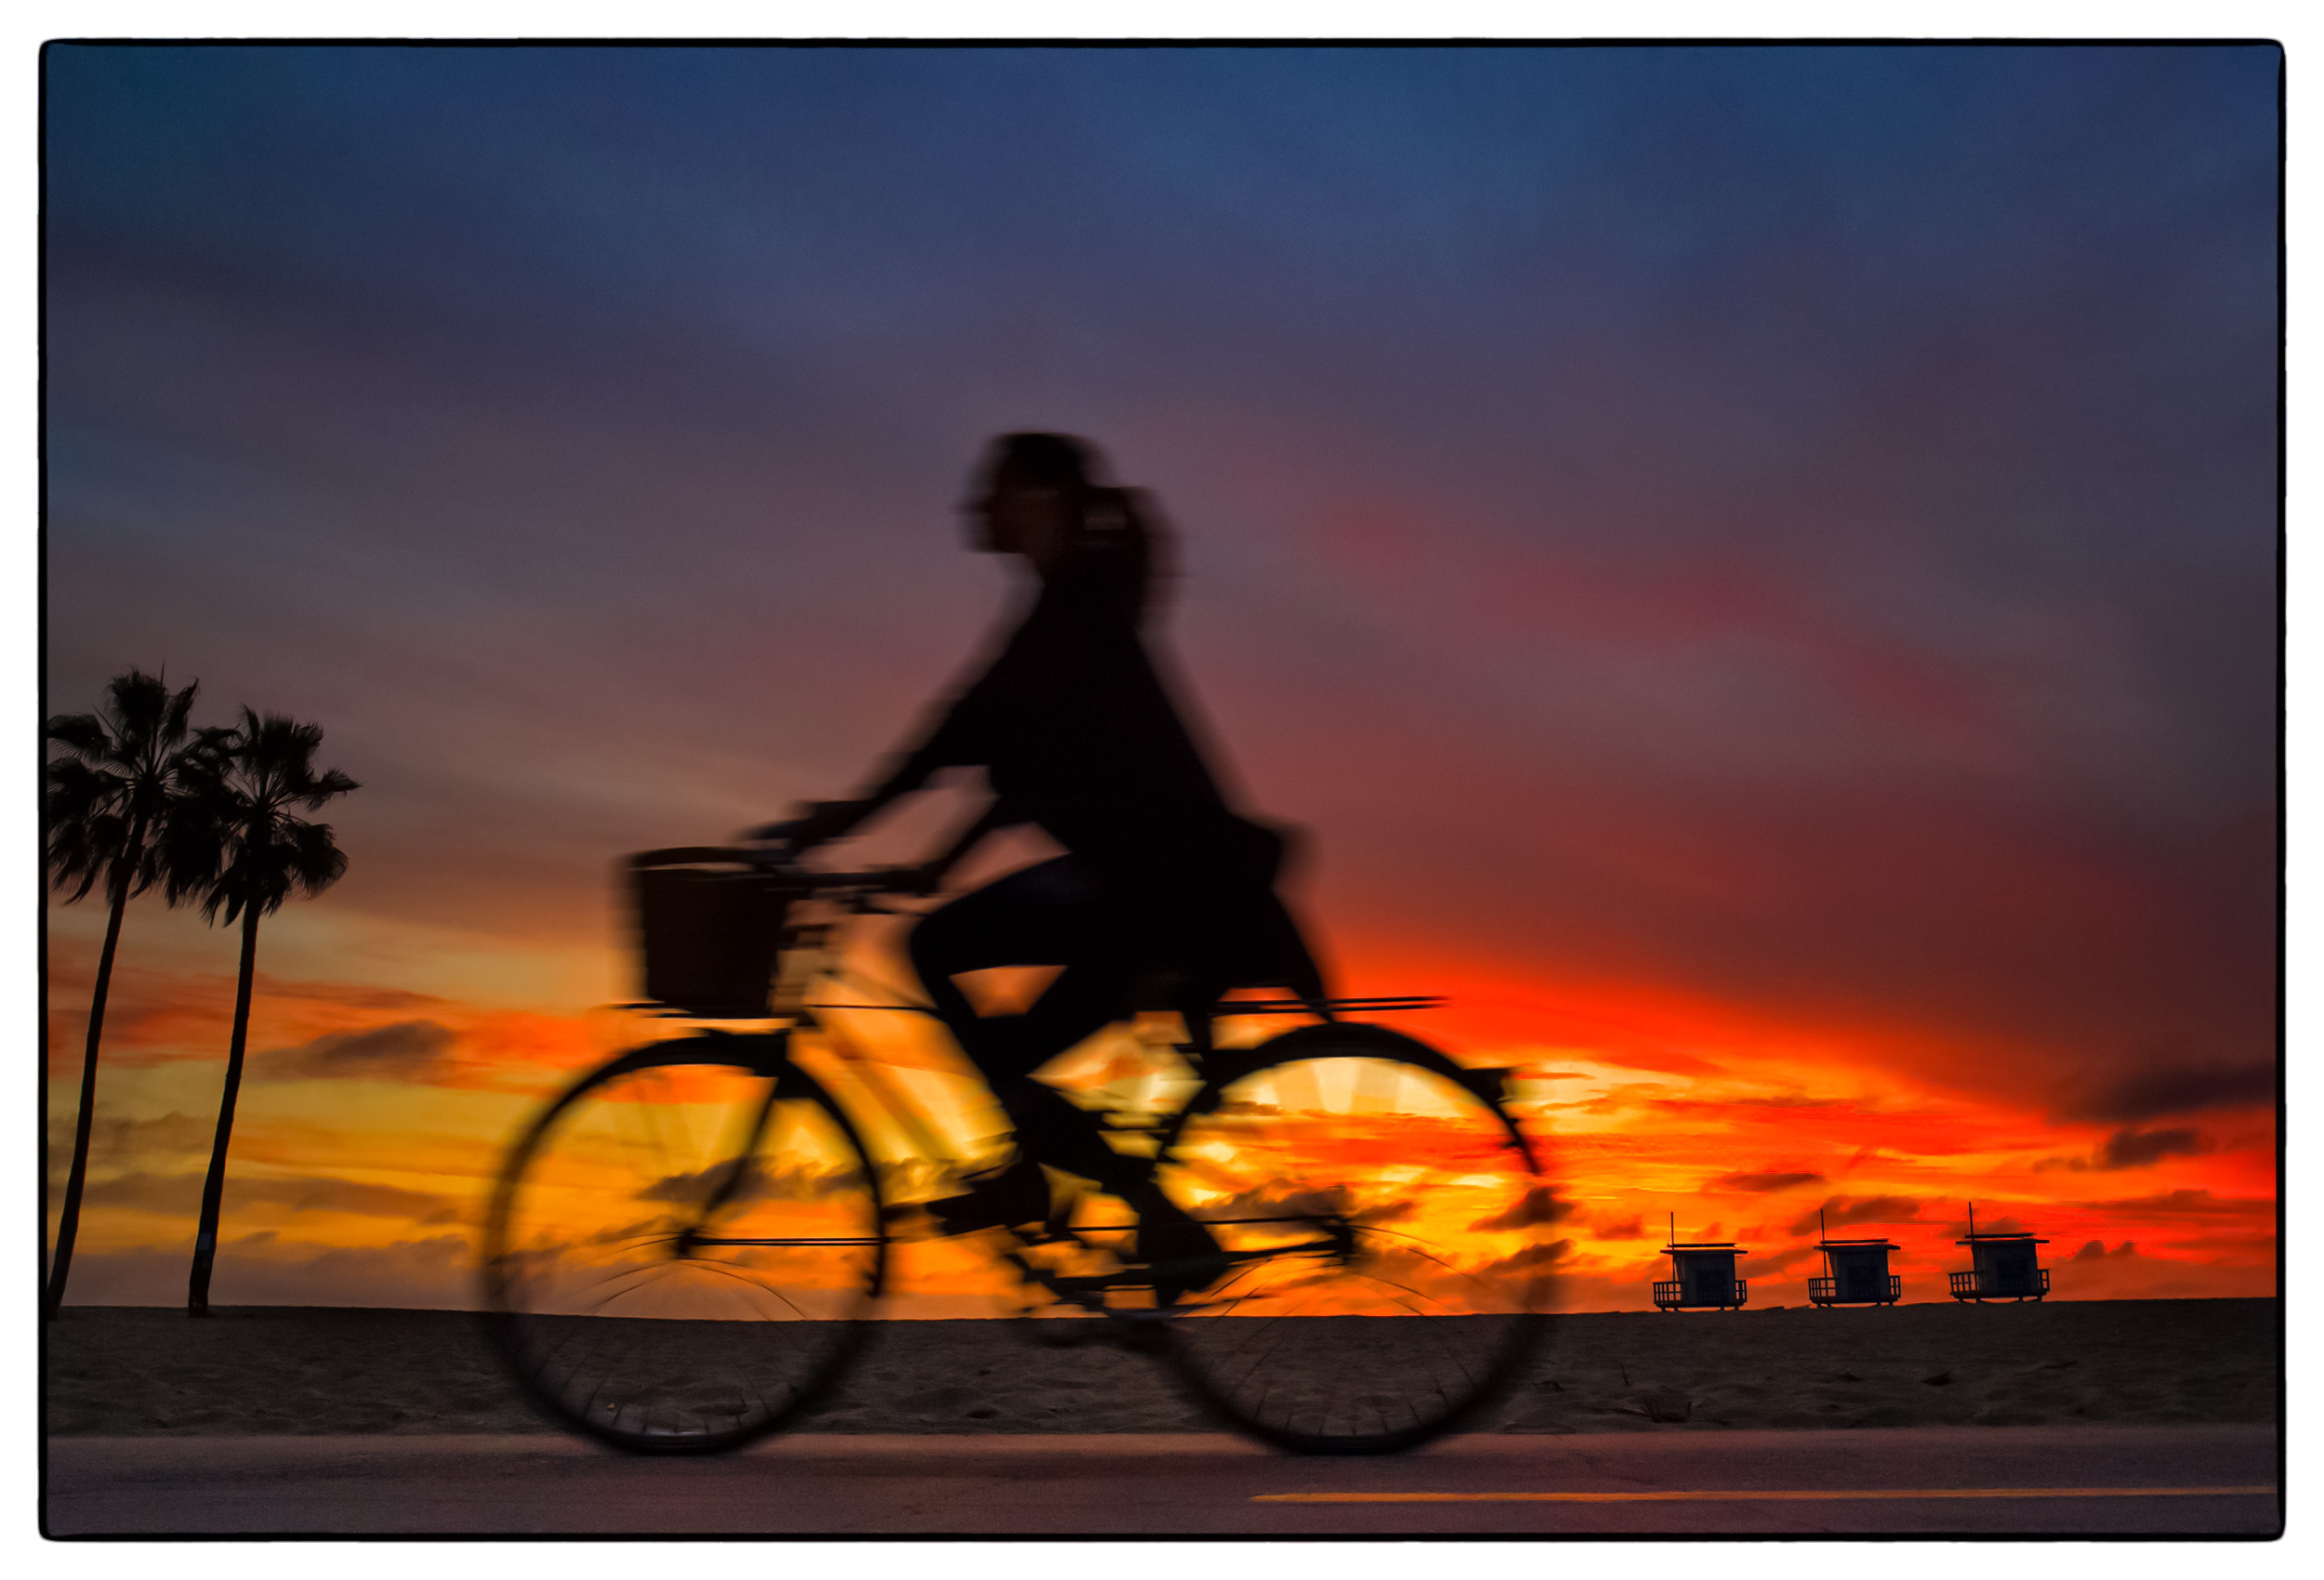 a-woman-on-her-bicycle-at-sunset-on-a-pathway-in-santa-monica-california